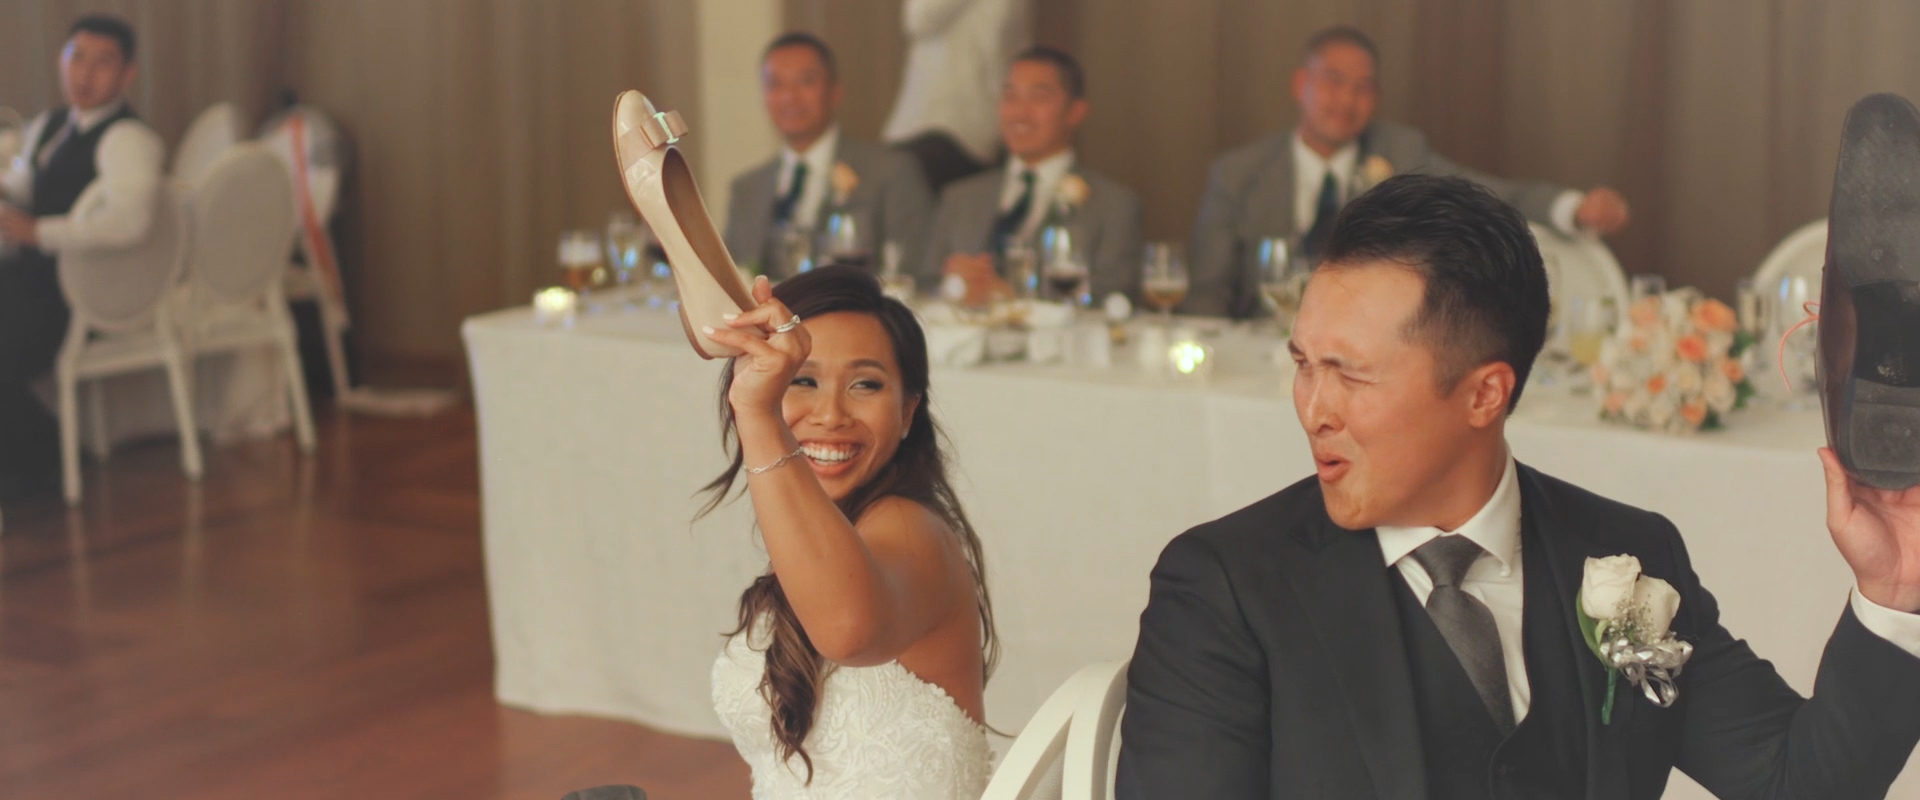 An image of a bride and groom playing the shoe game during their wedding reception; taken from a Toronto Wedding Video